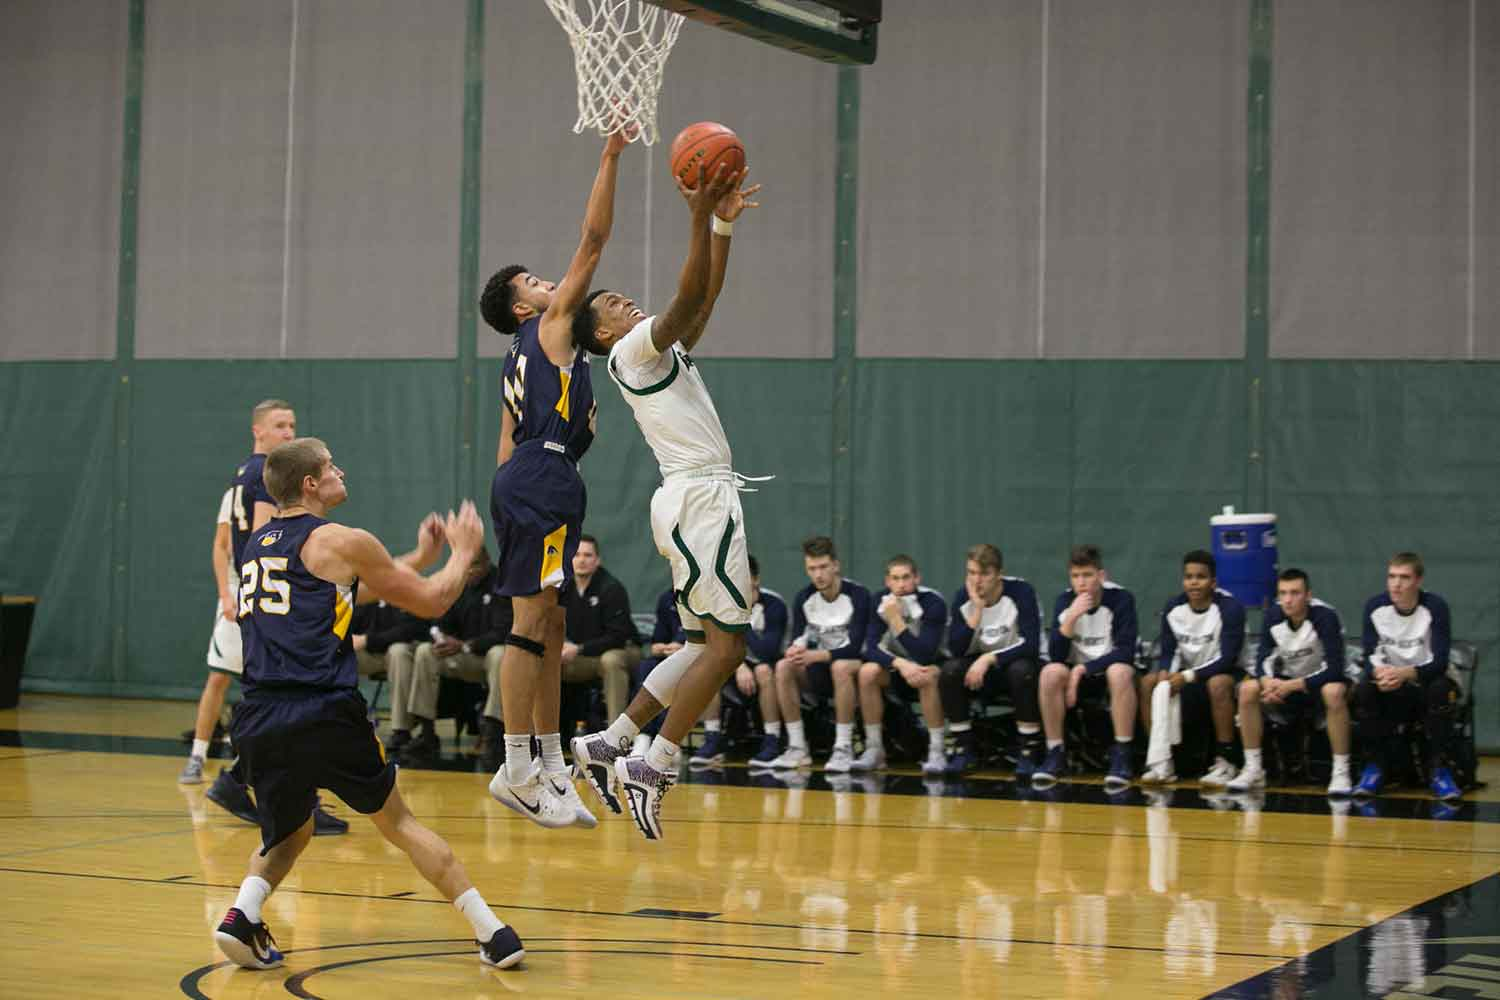 A men's basketball player tries for a basket while the opposing team tries to block